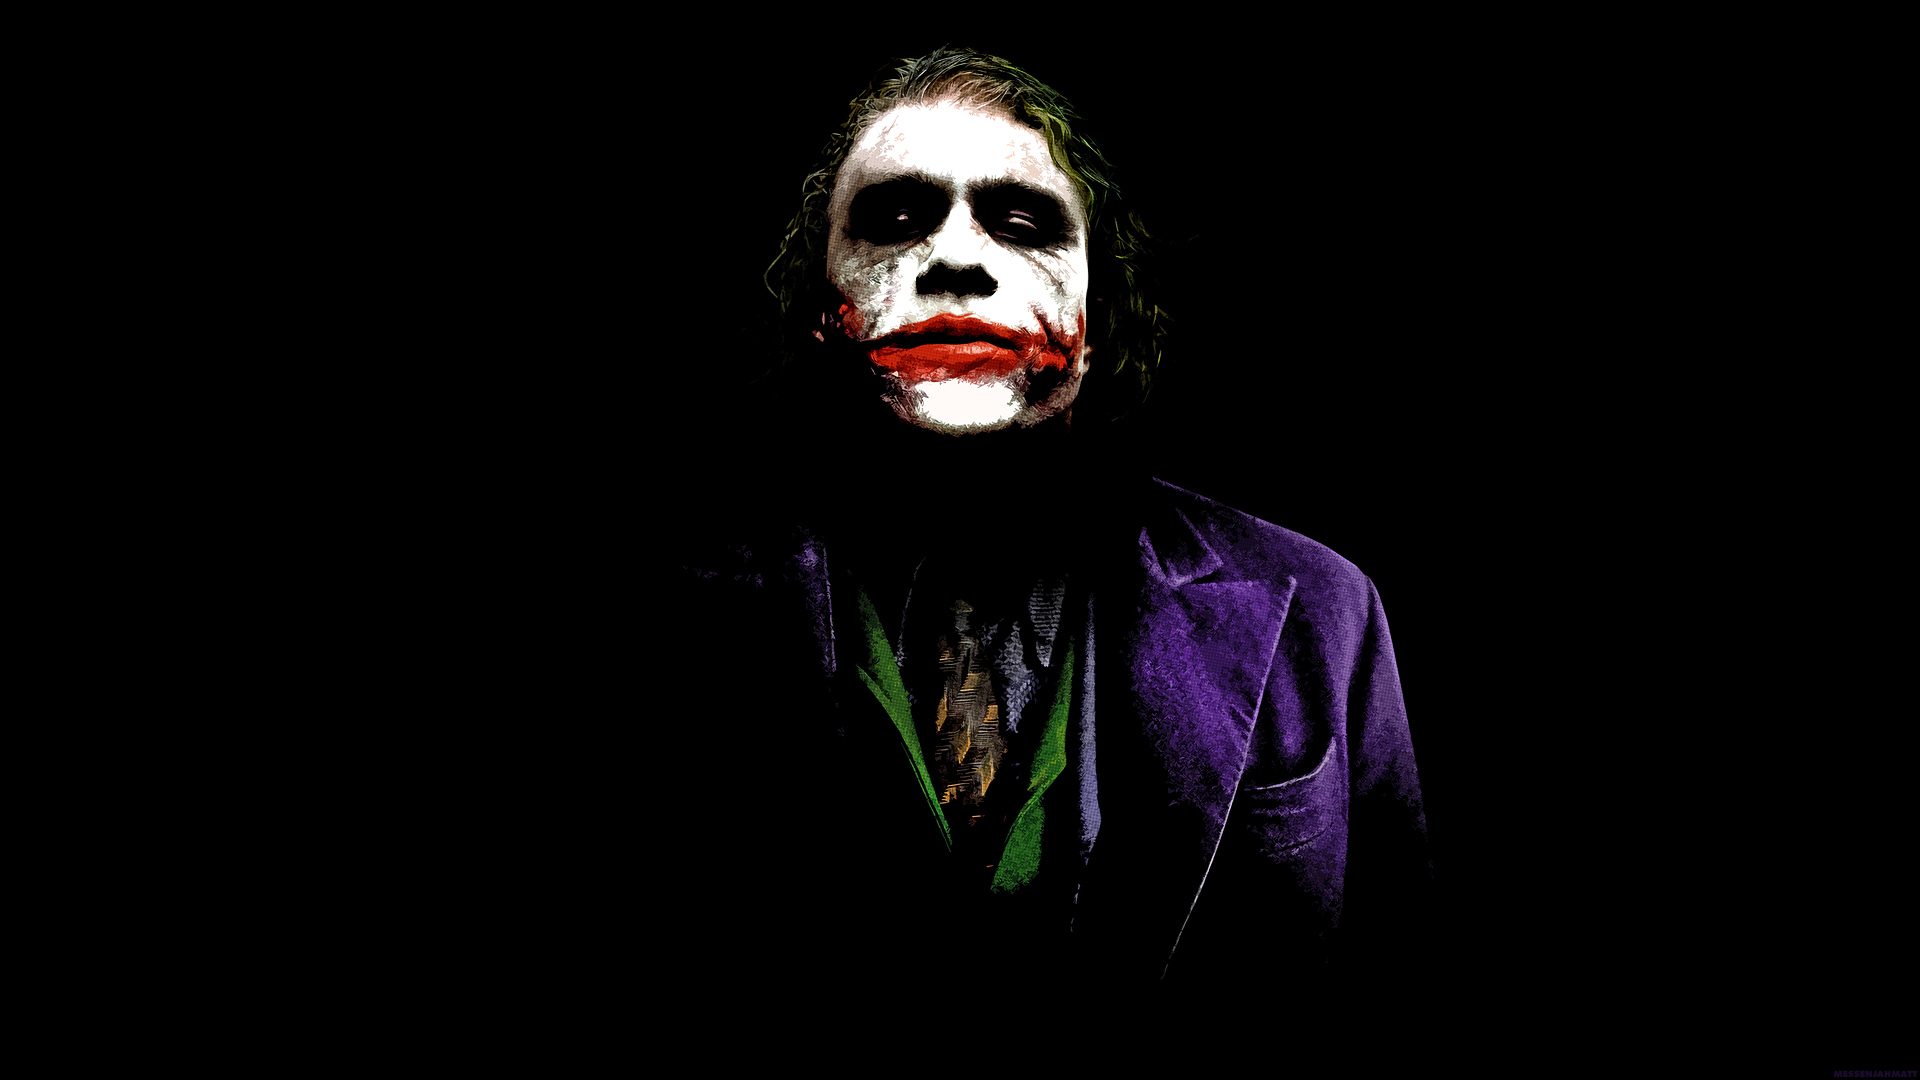 The Joker images joker HD wallpaper and background photos 28092878 1920x1080